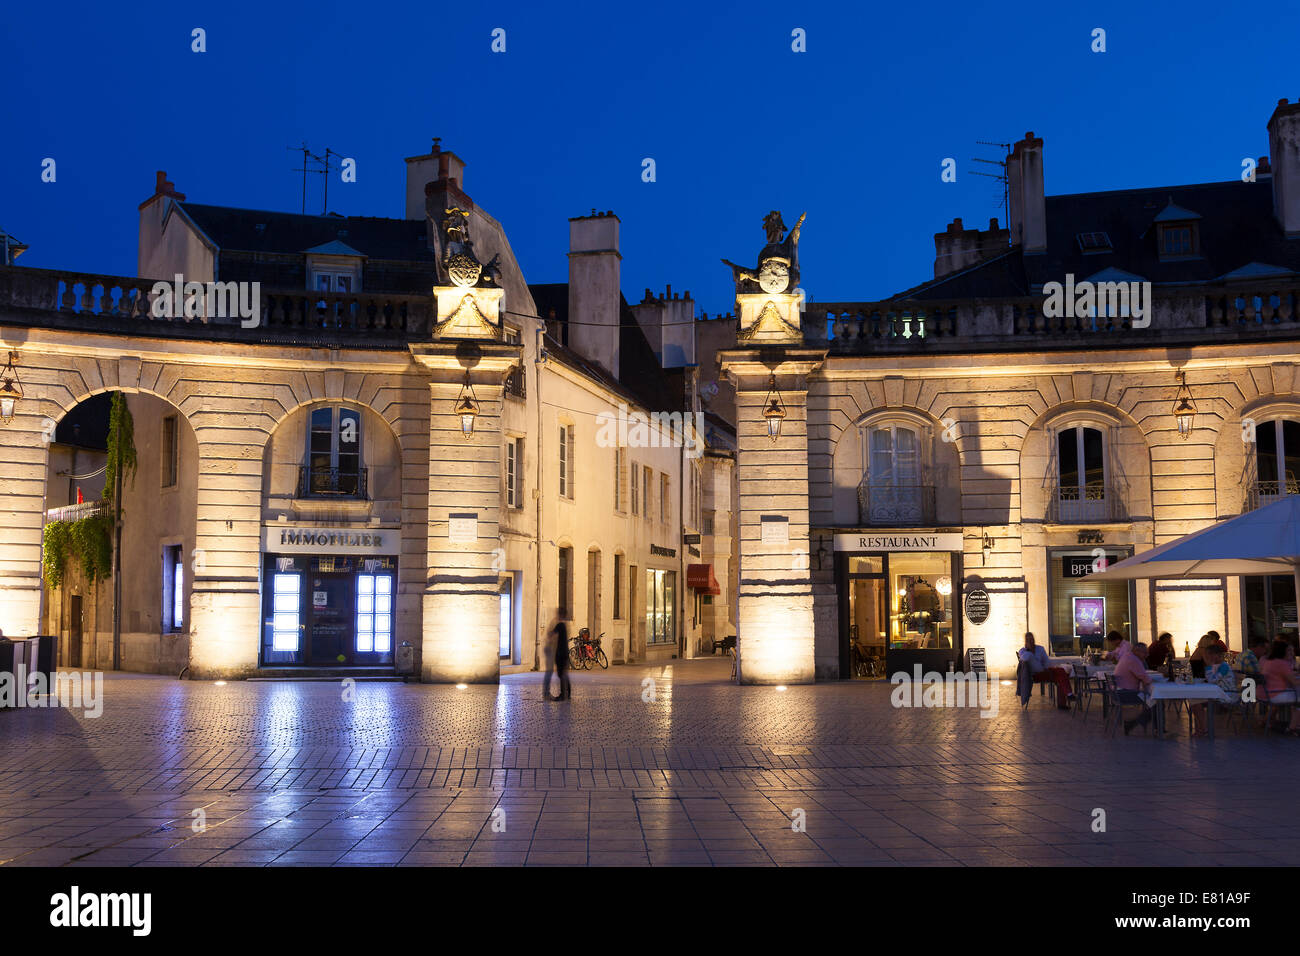 Liberation square, Dijon, Departement Cote-d'Or, Bourgogne, France - Stock Image